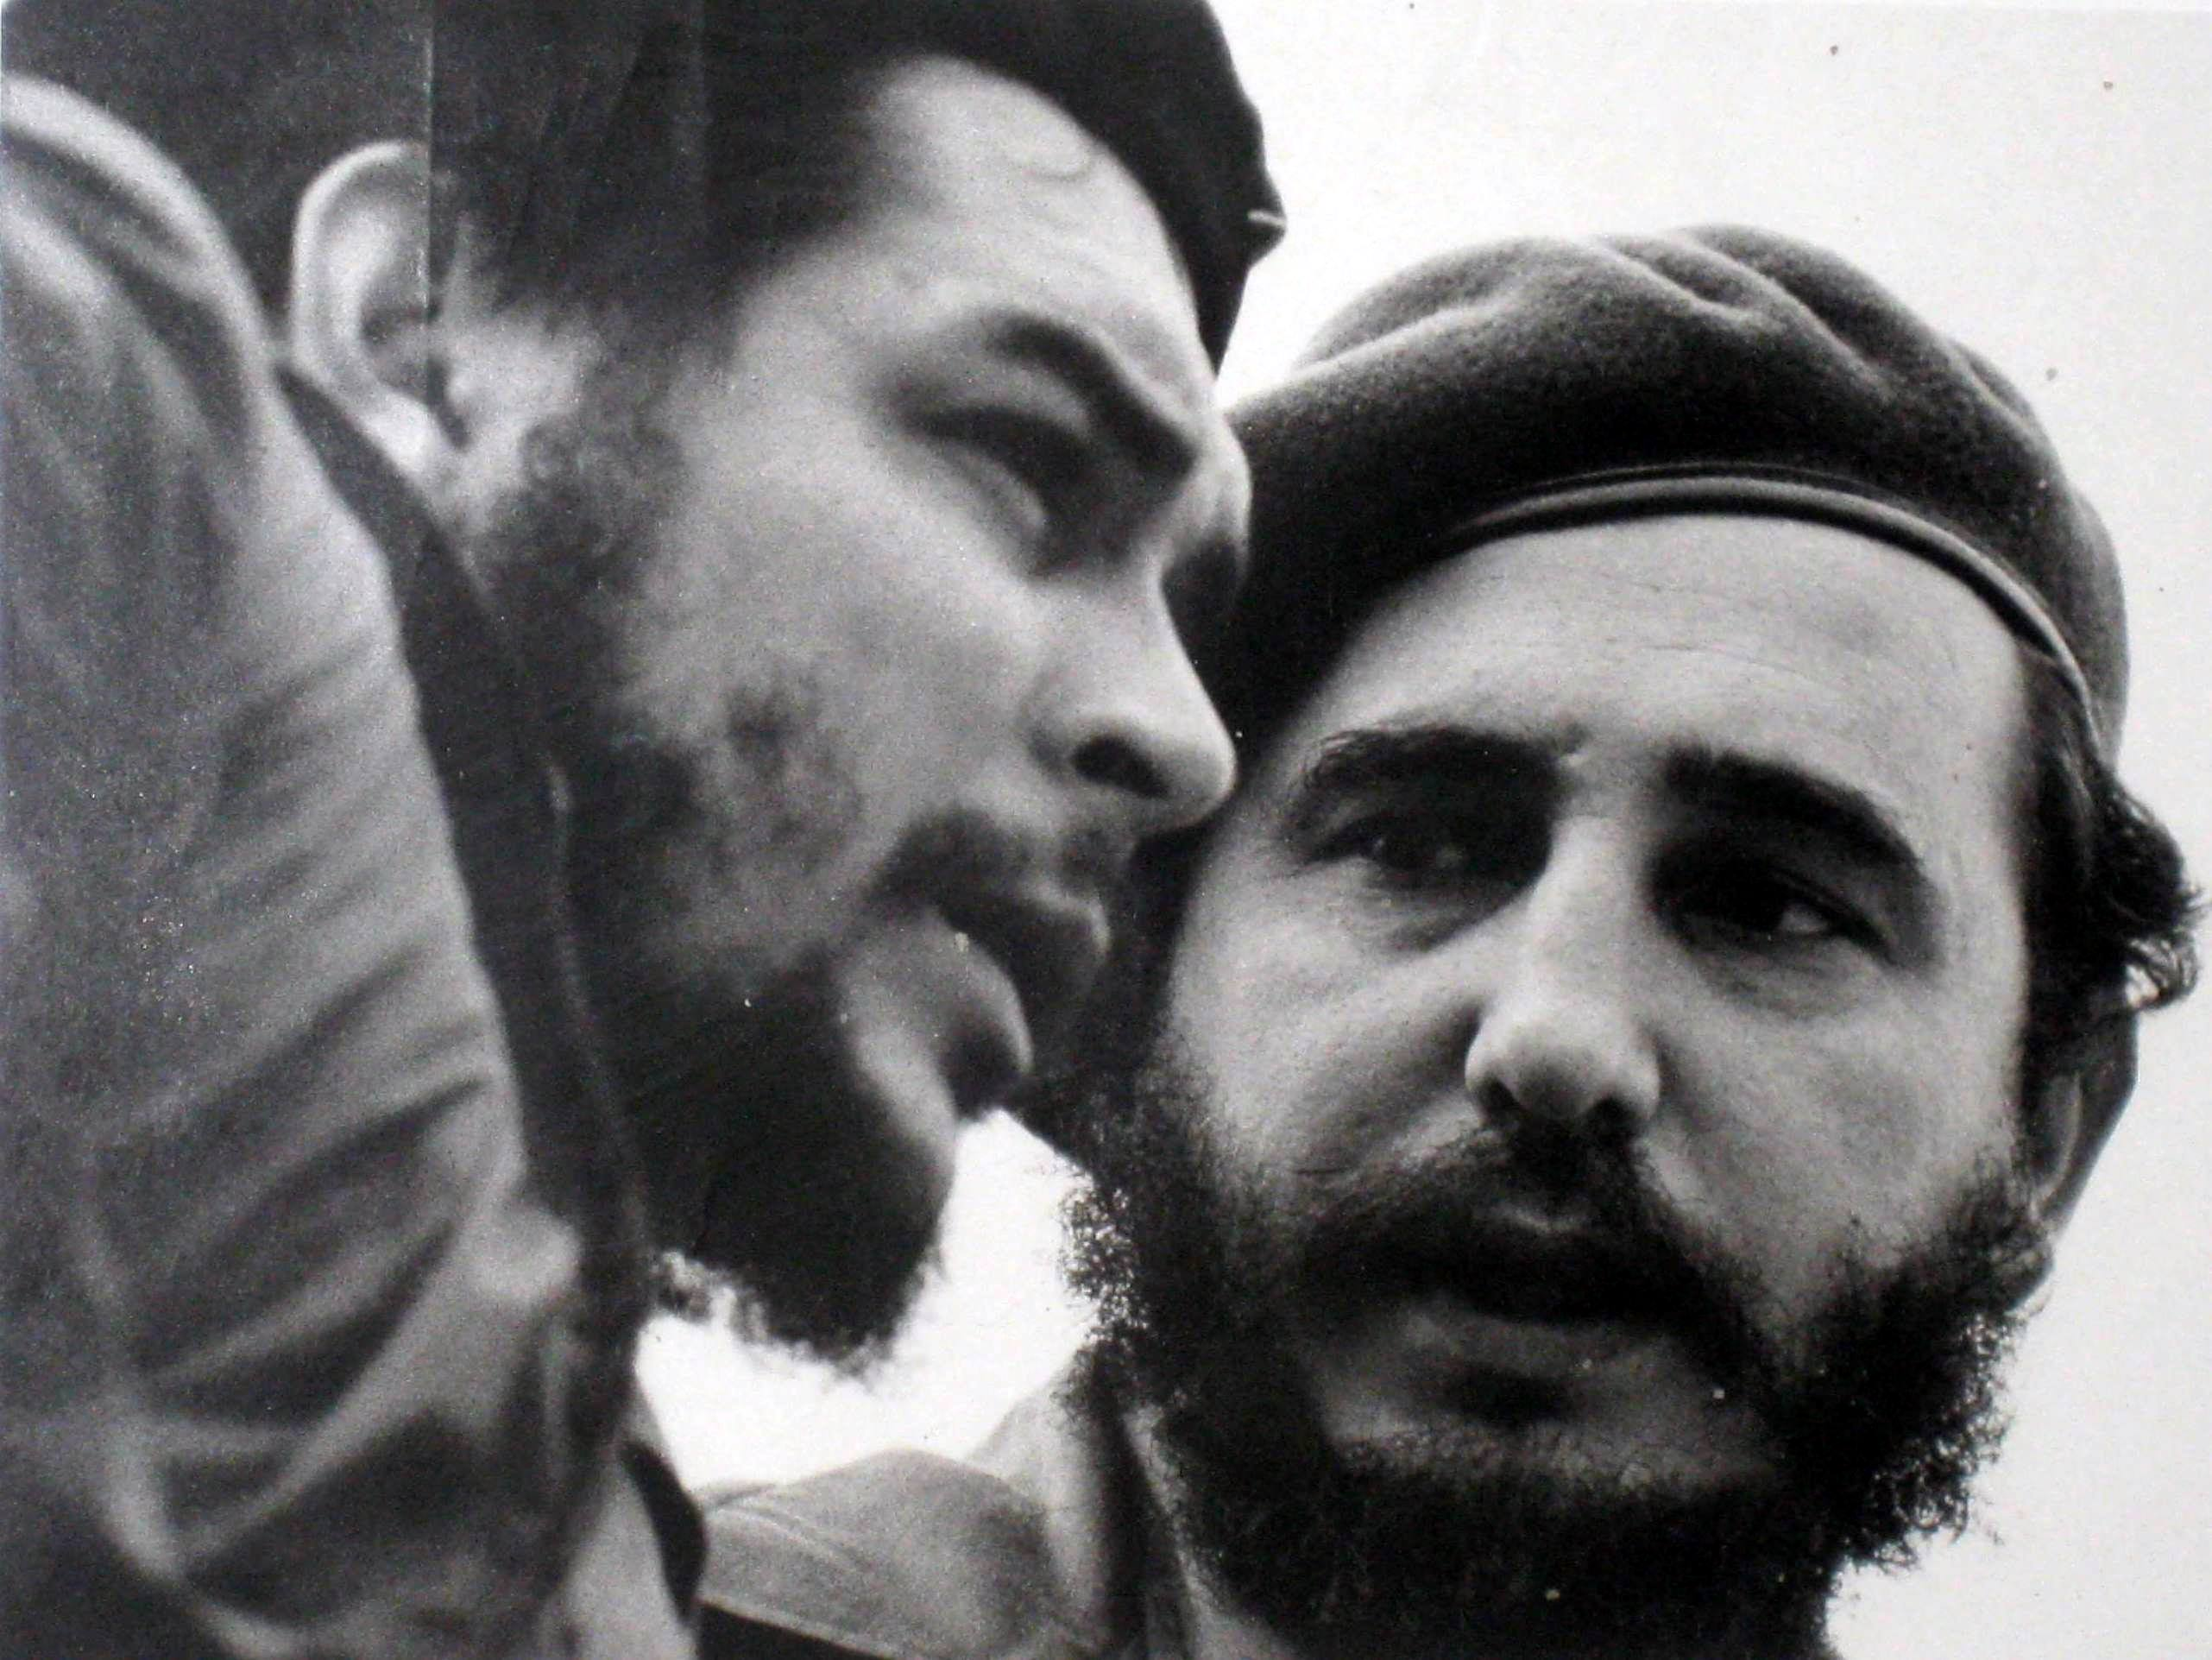 fidel castro s resilience In la vie cachée de fidel castro (fidel castro's hidden life) fidel has never renounced capitalist comforts or chosen to live in austerity.